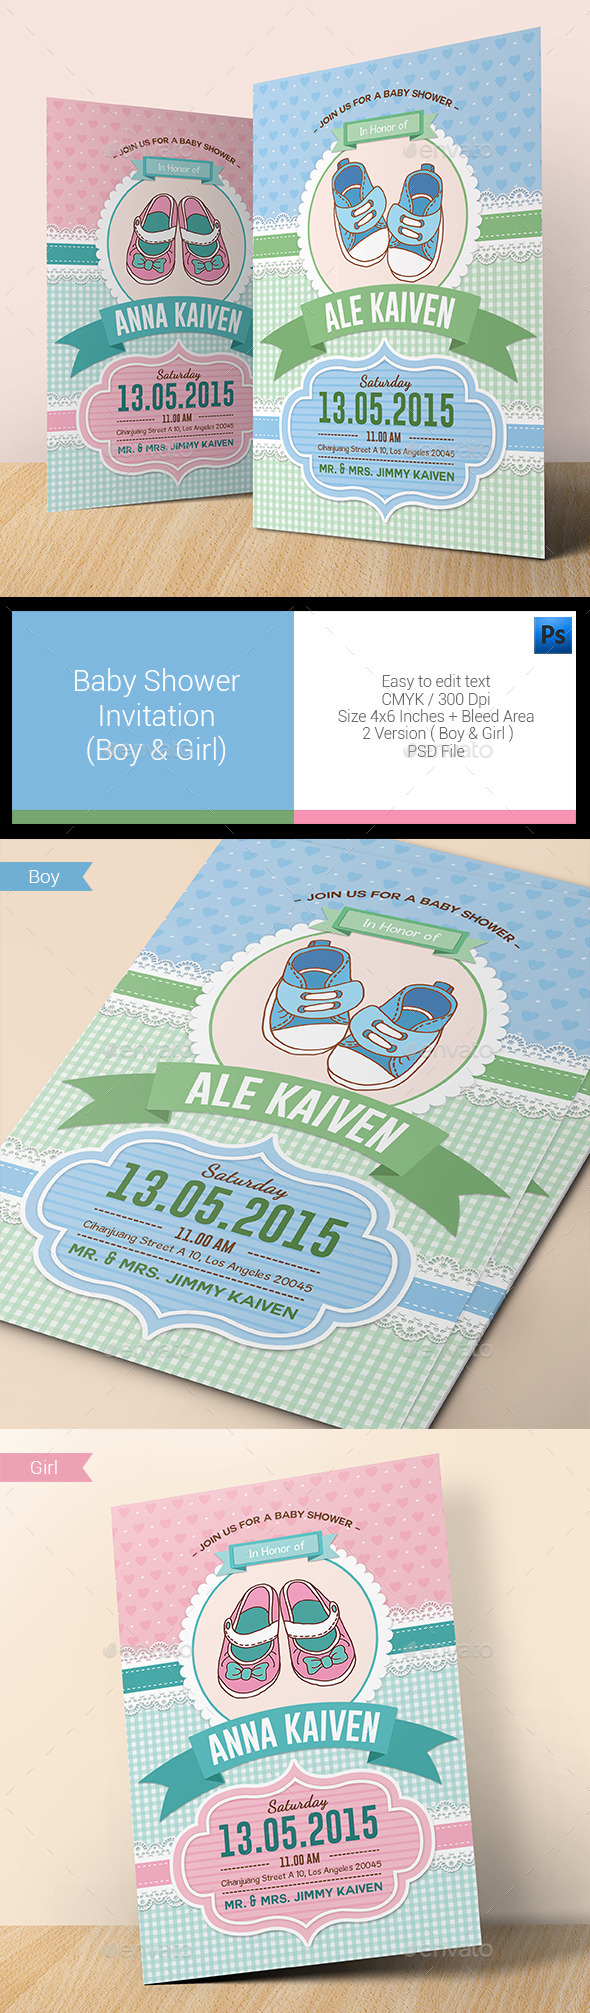 Baby Shower Invitation (Boy & Girl) - Invitations Cards & Invites